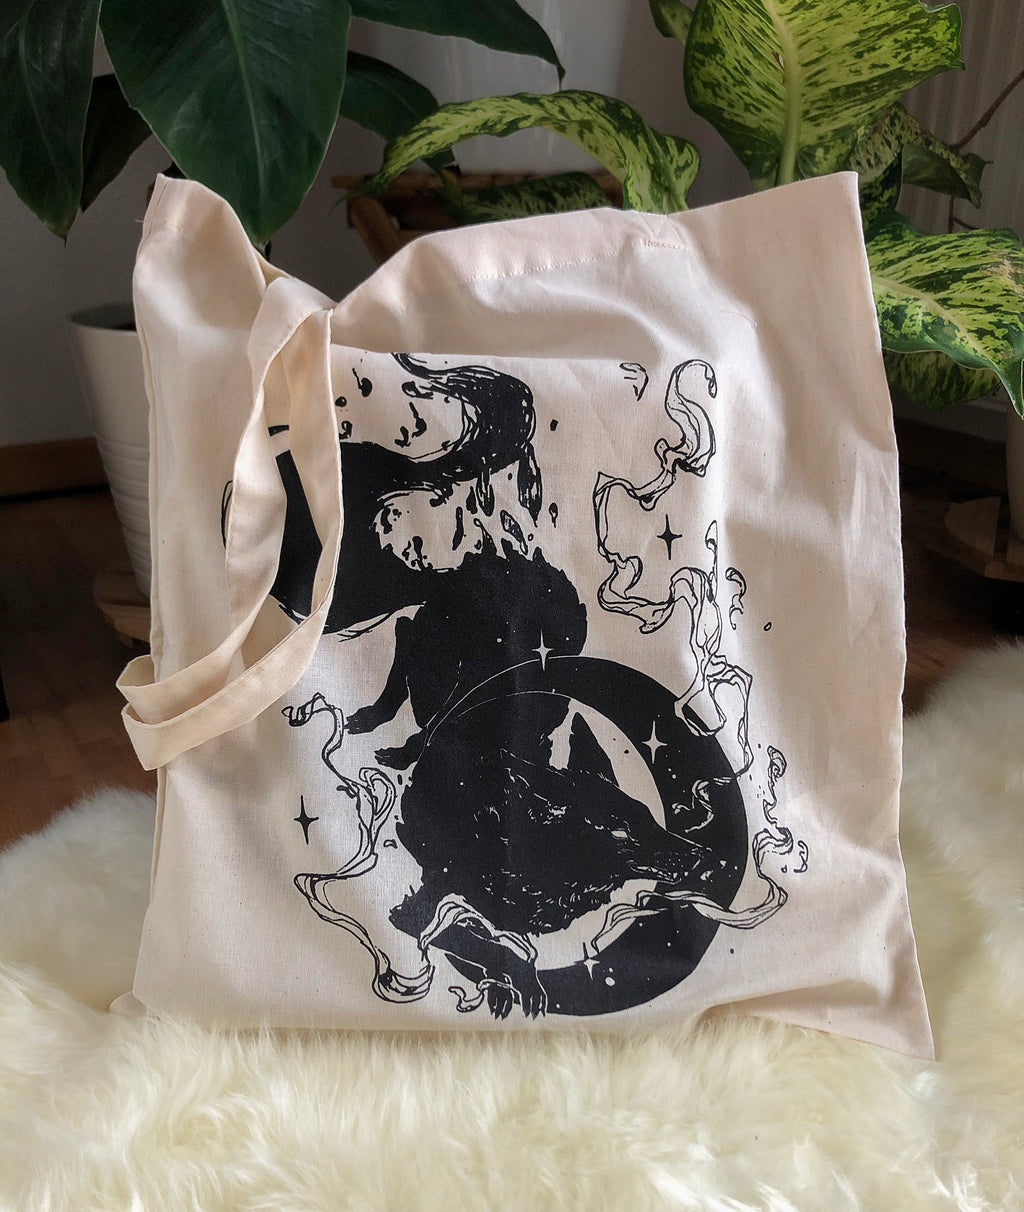 Mooneater | Tote Bag - Aurigae Art &Illustration